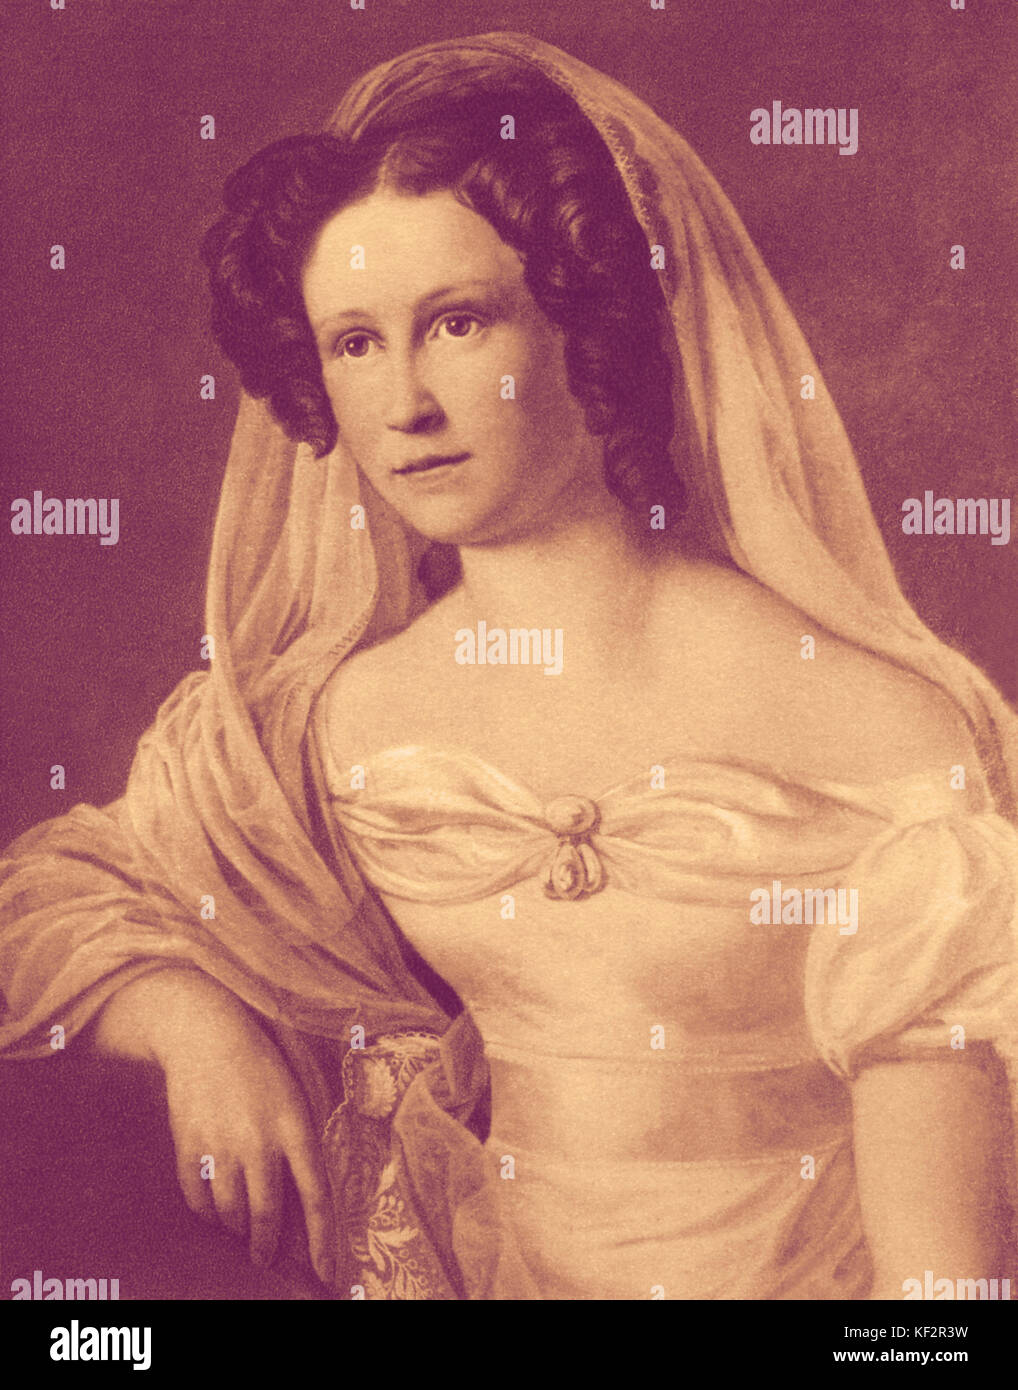 Rosalie Wagner, actress and sister of Richard Wagner. She was the first actress to play Gretchen in Goethe's - Stock Image